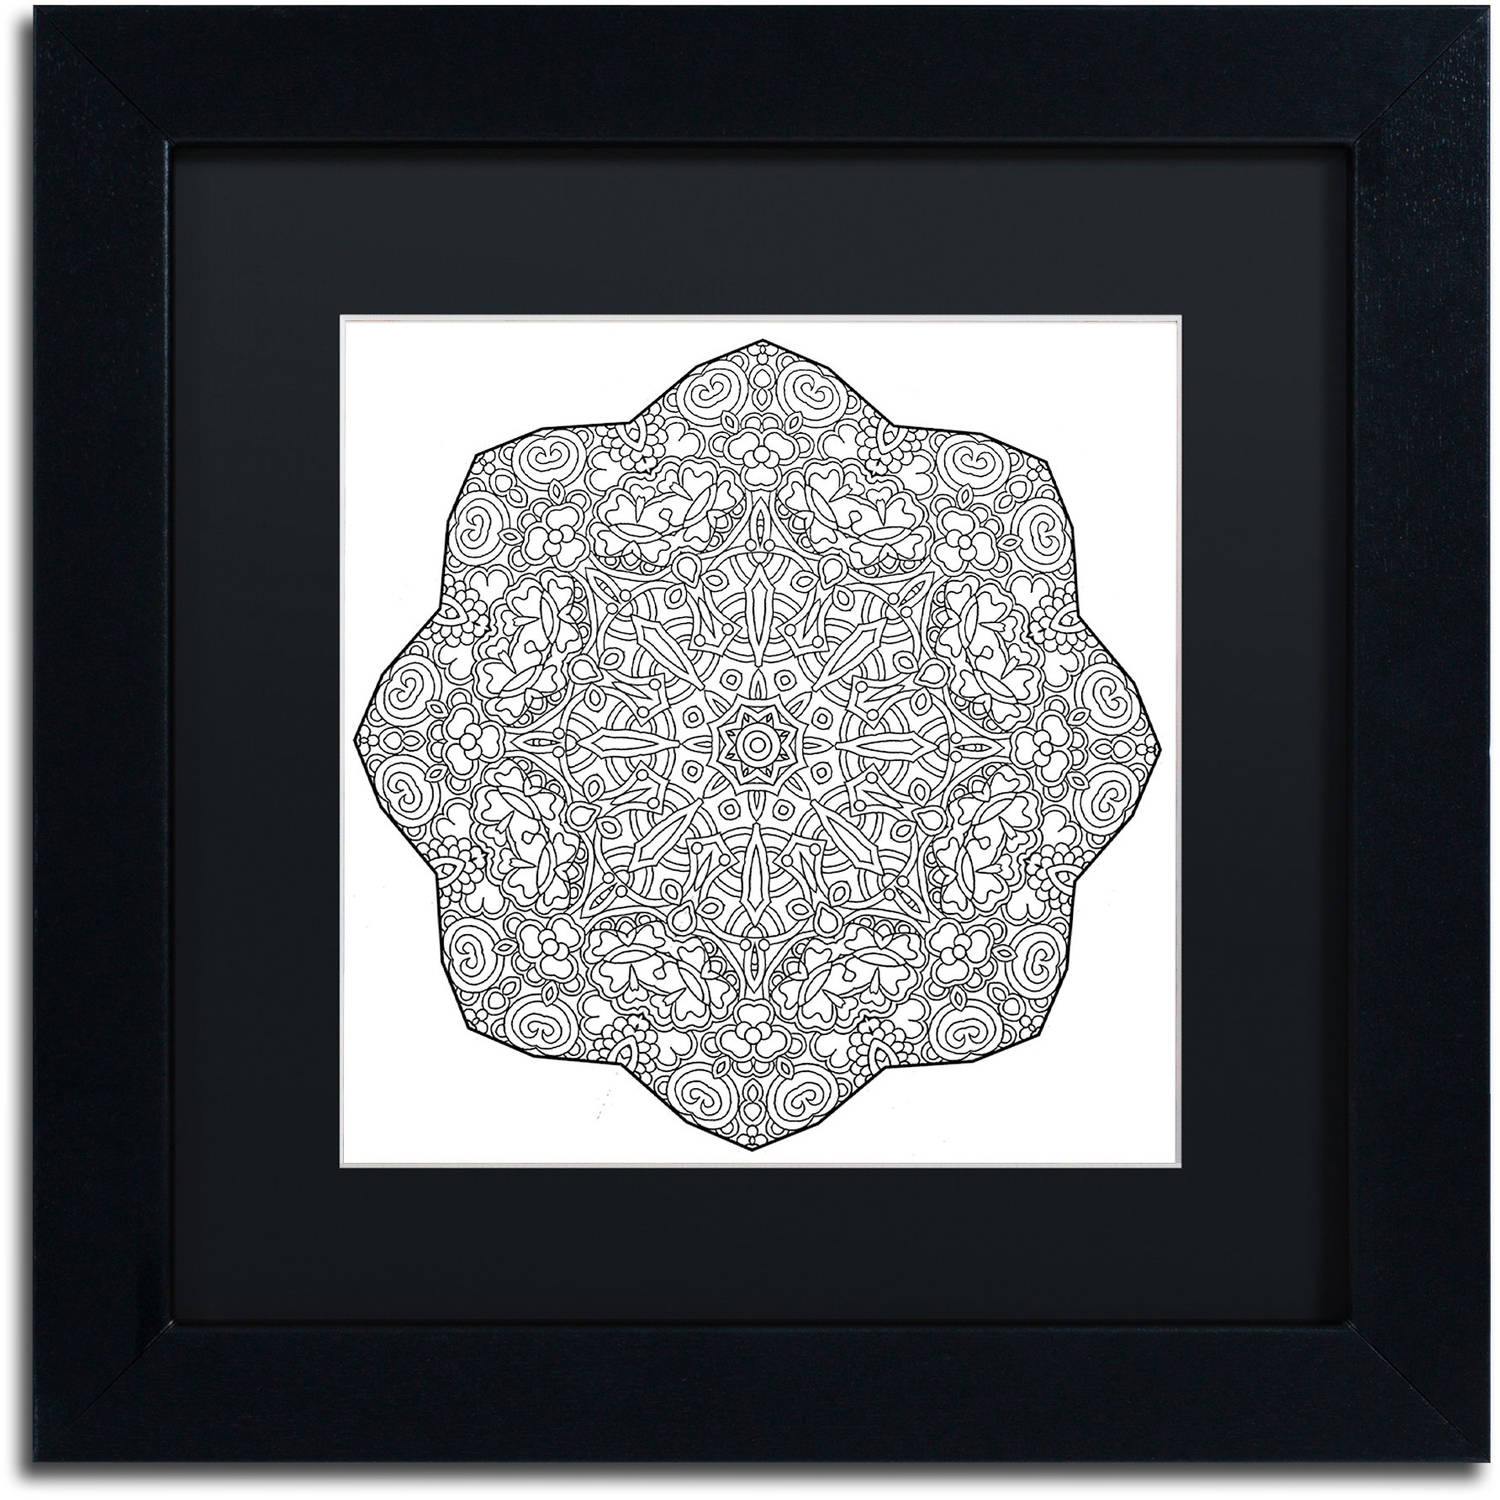 """Trademark Fine Art """"Mixed Coloring Book 15"""" Canvas Art by Kathy G. Ahrens, Black Matte, Black Frame"""